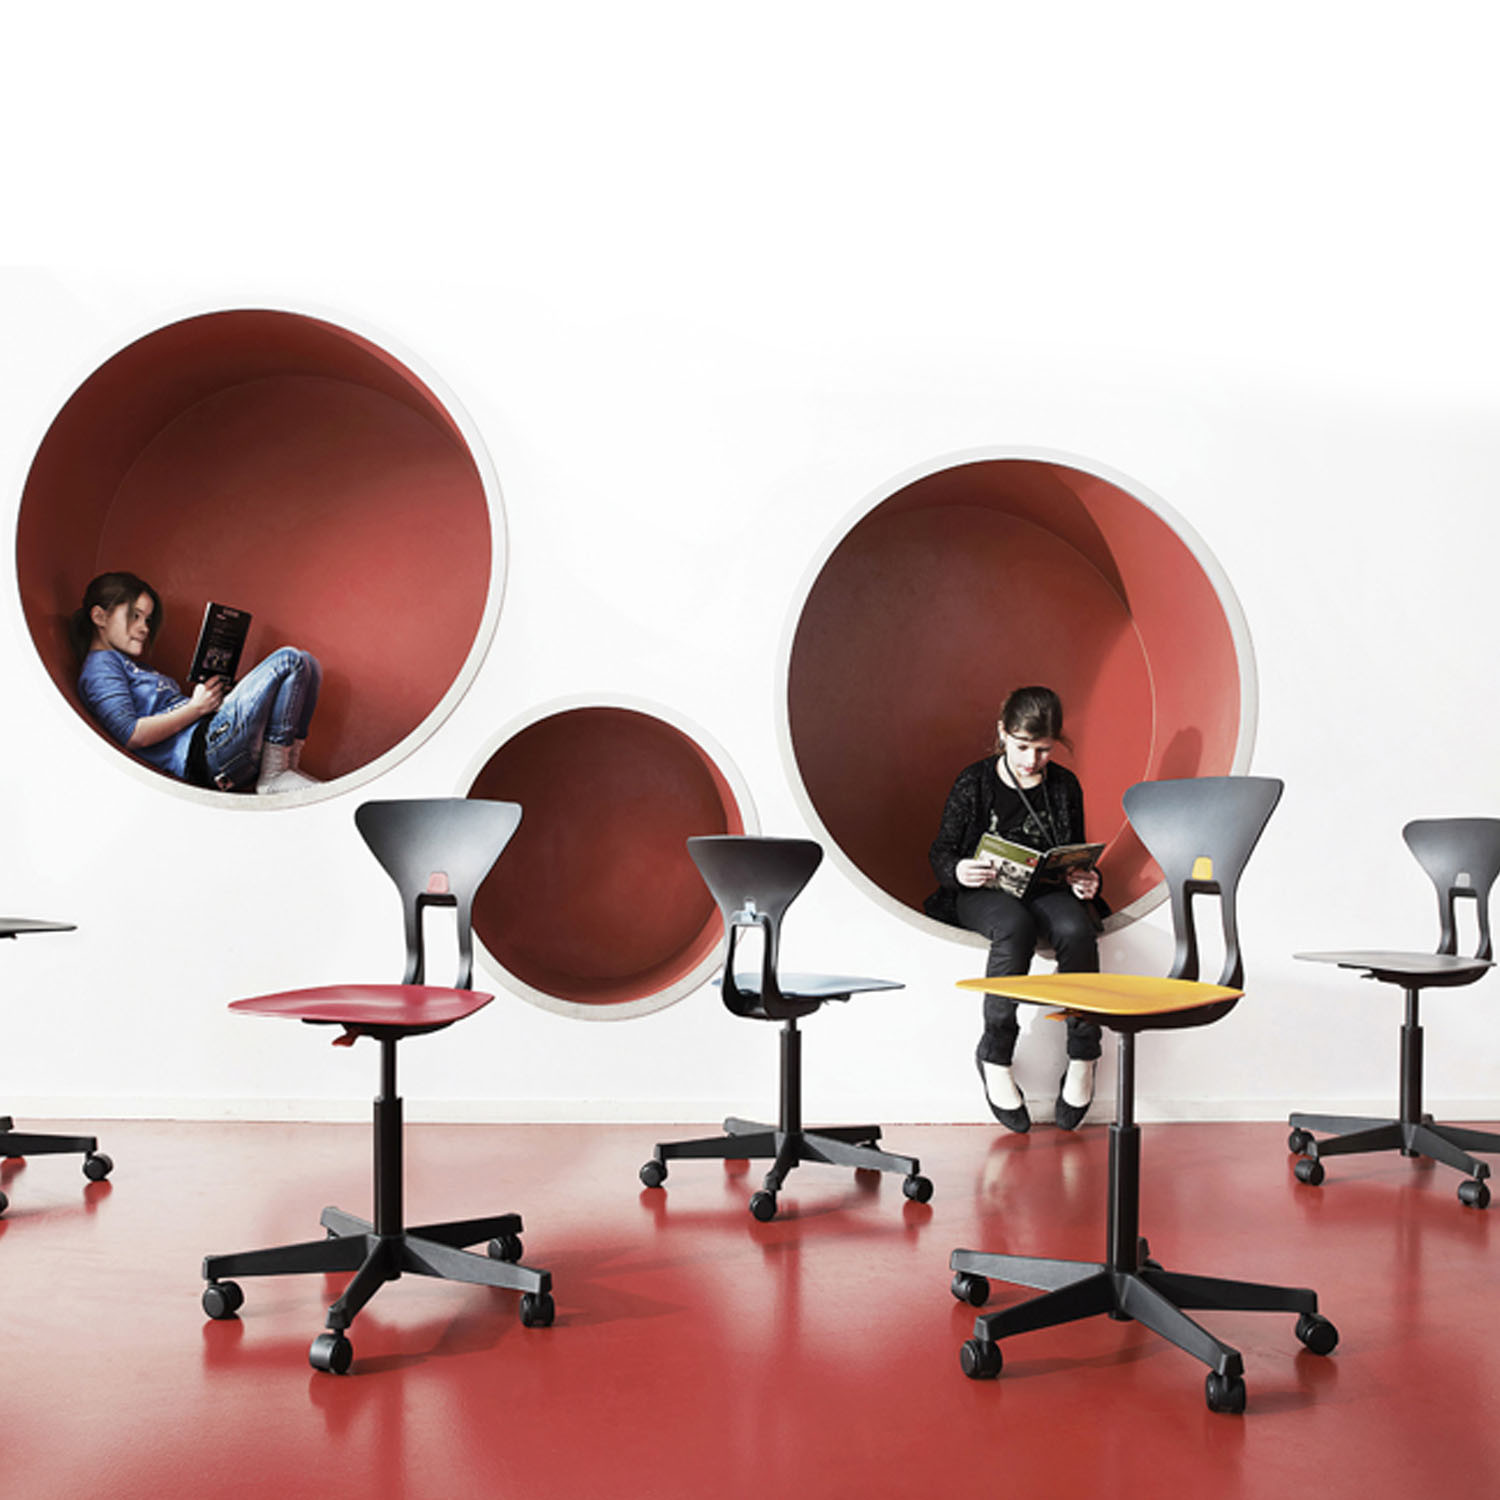 Ray Ergonomic Children's Chair